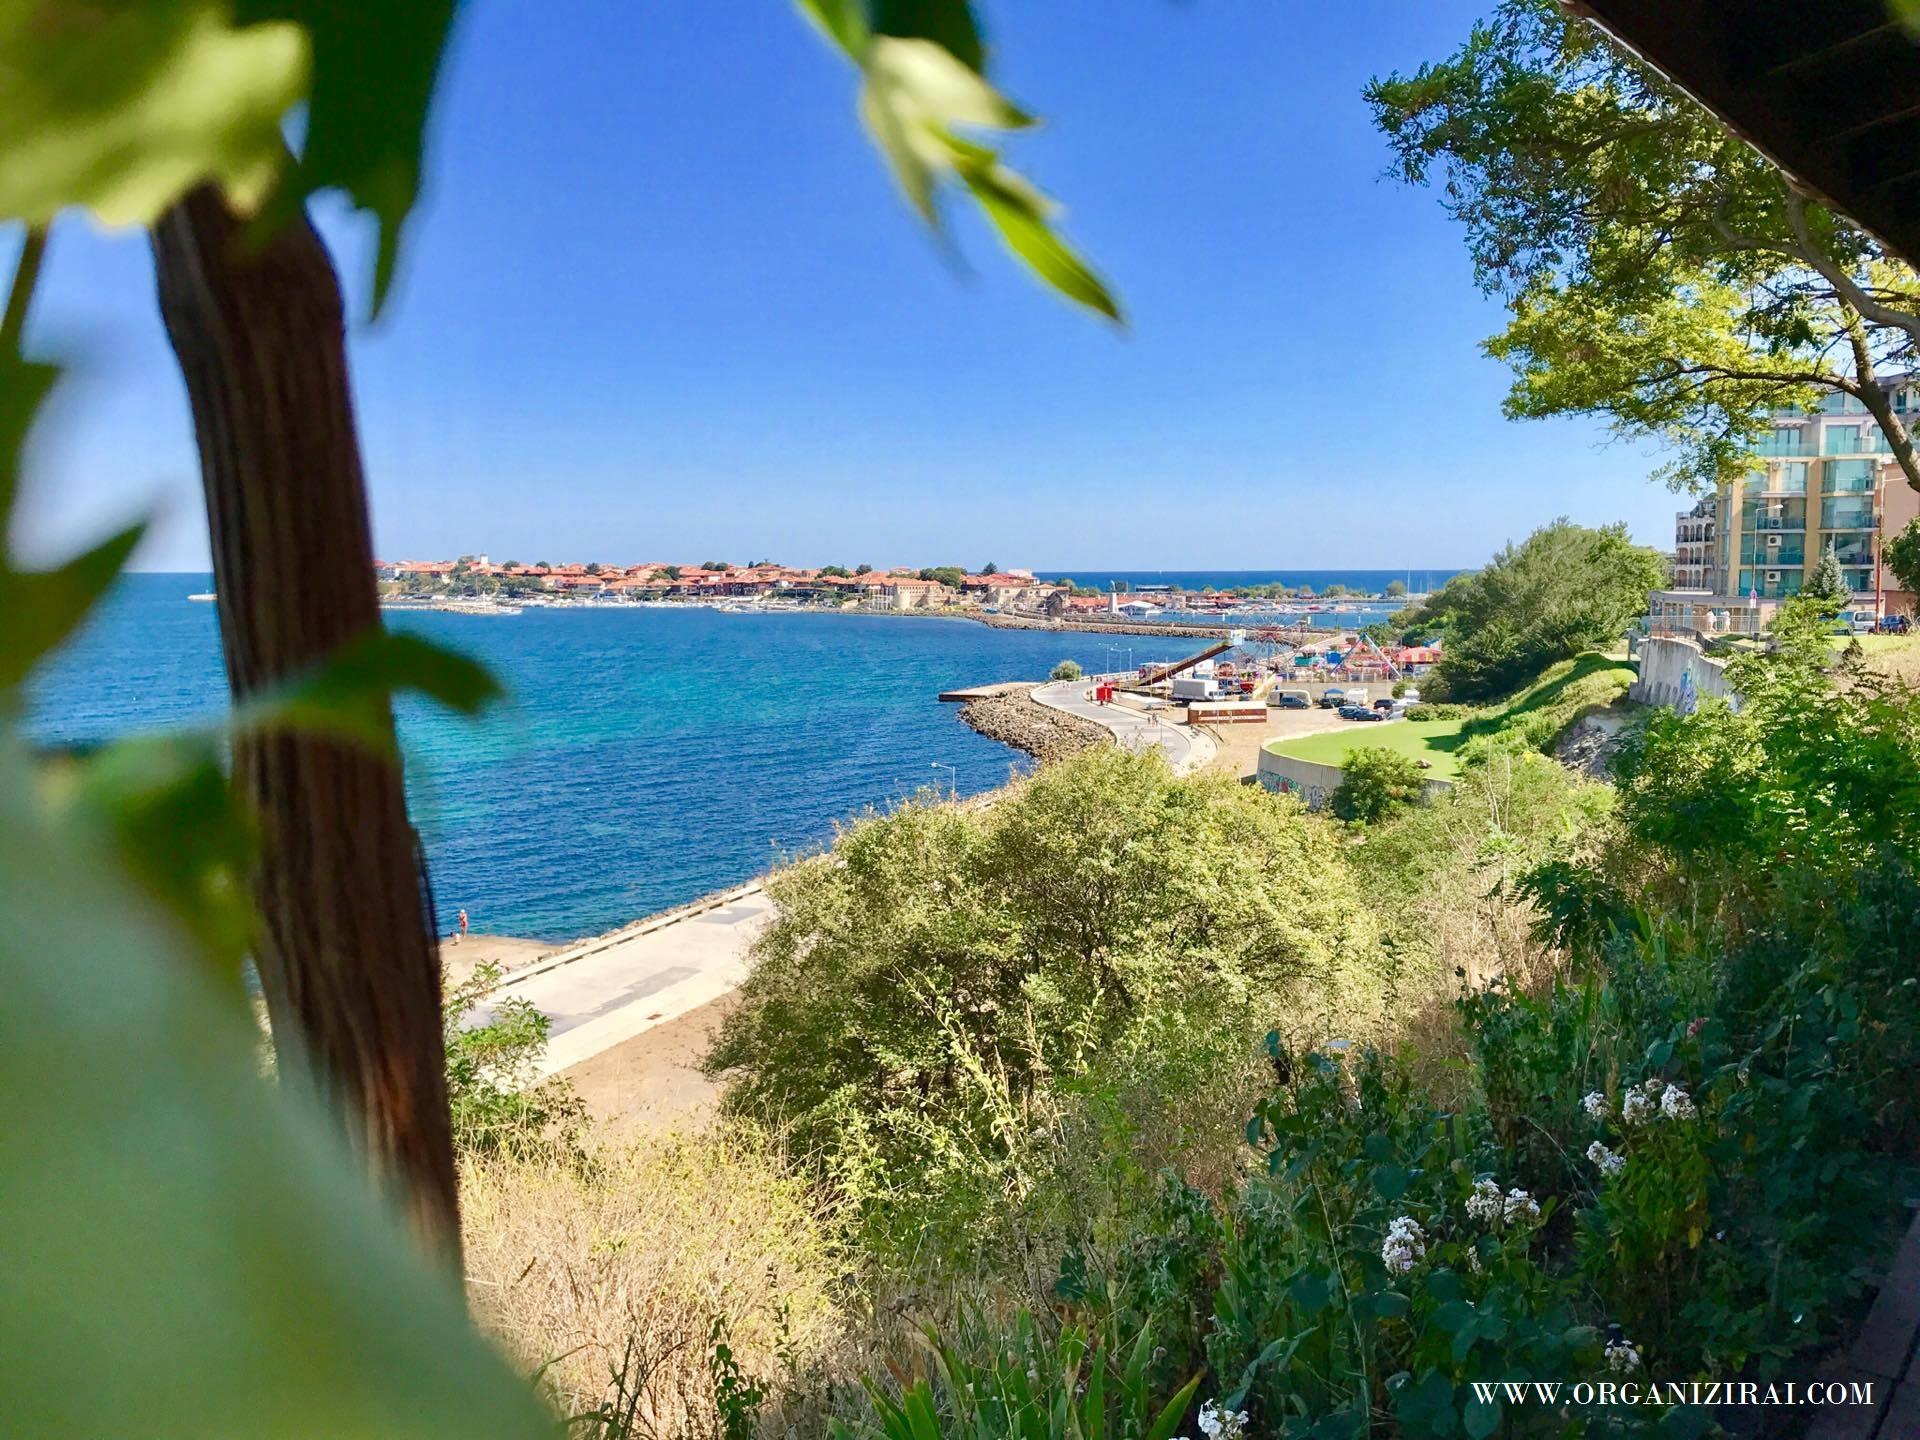 NESSEBAR_TRAVEL_BLOG_BLOGGER_BEAUTIFUL_PLACES_IN_THE_WORLD_PARADISE_AMAZING_VIEW_PANORAMA_SEA_VIEW_ORGANIZIRAI.COM